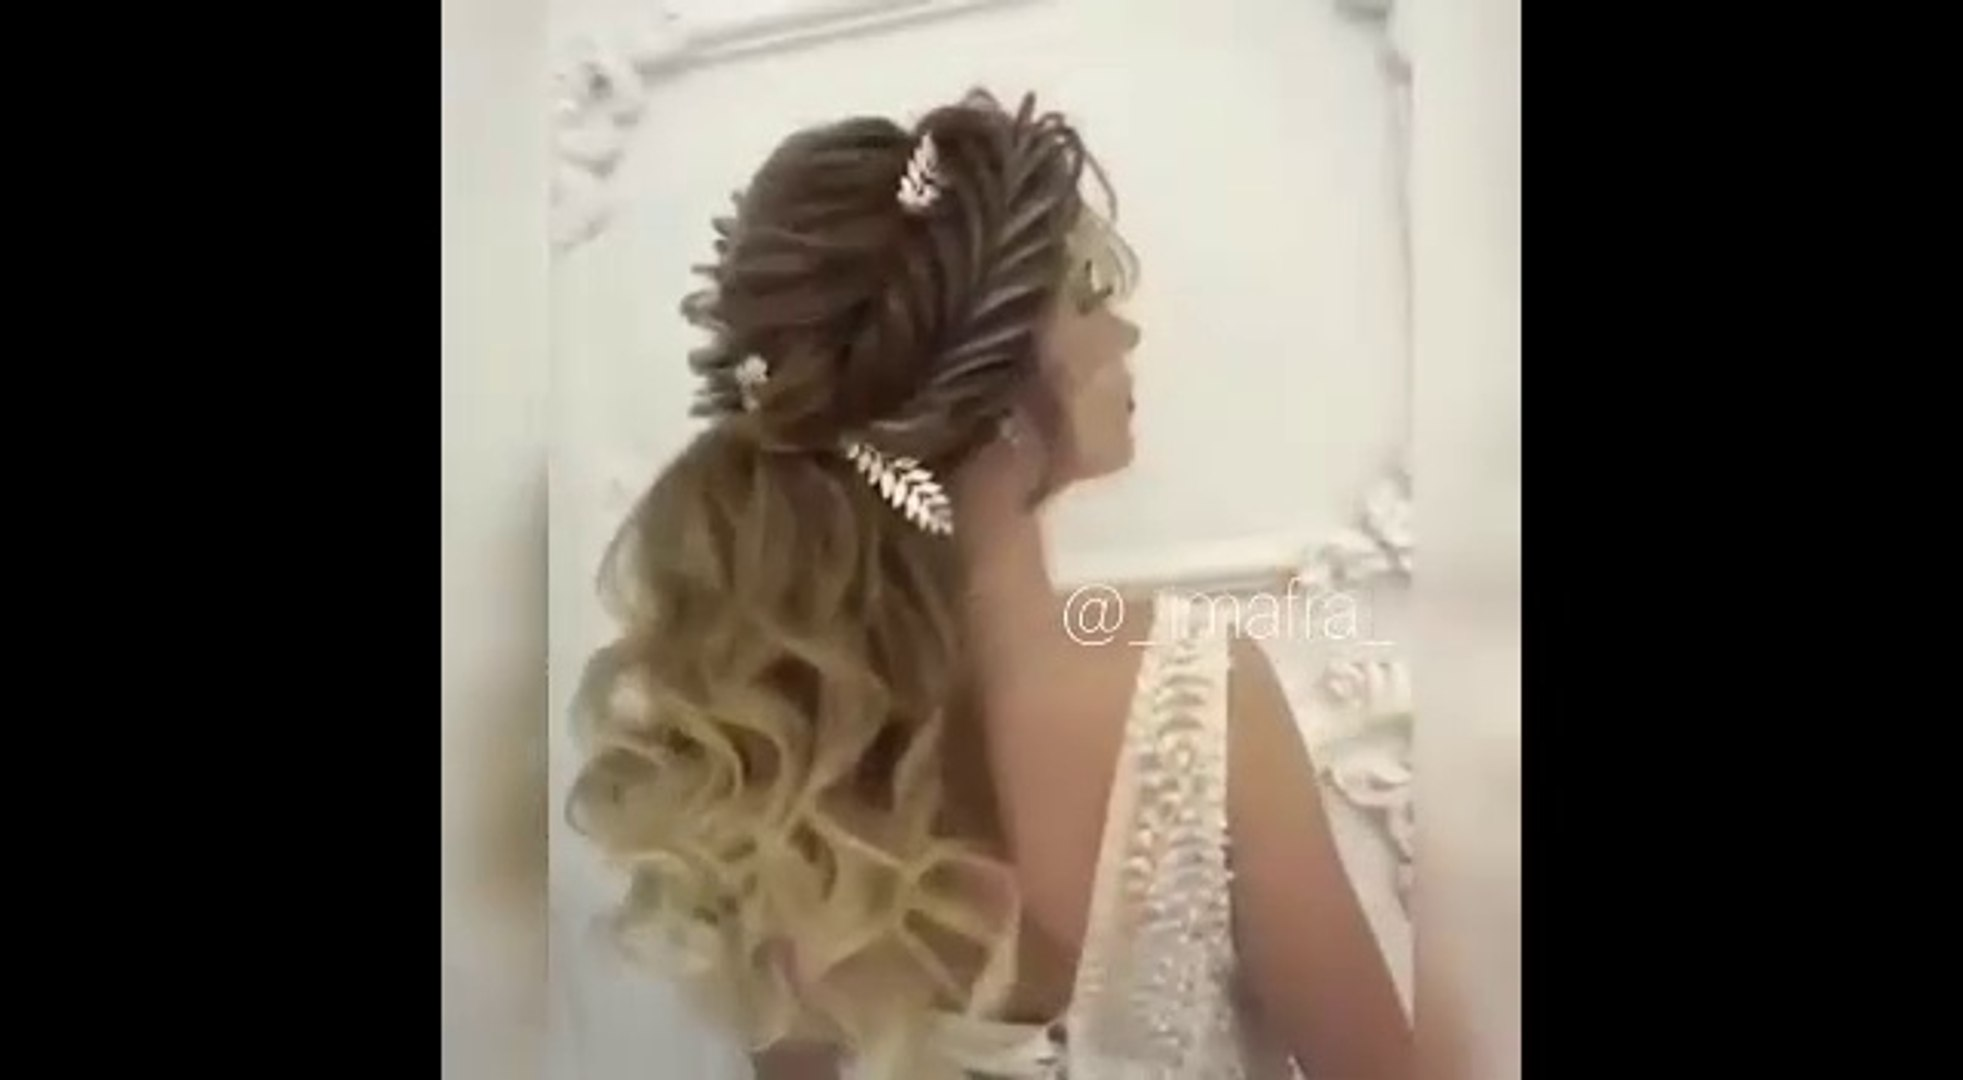 hairstyles of esther kinder#braided chignon (hairstyles by estherkinder)&